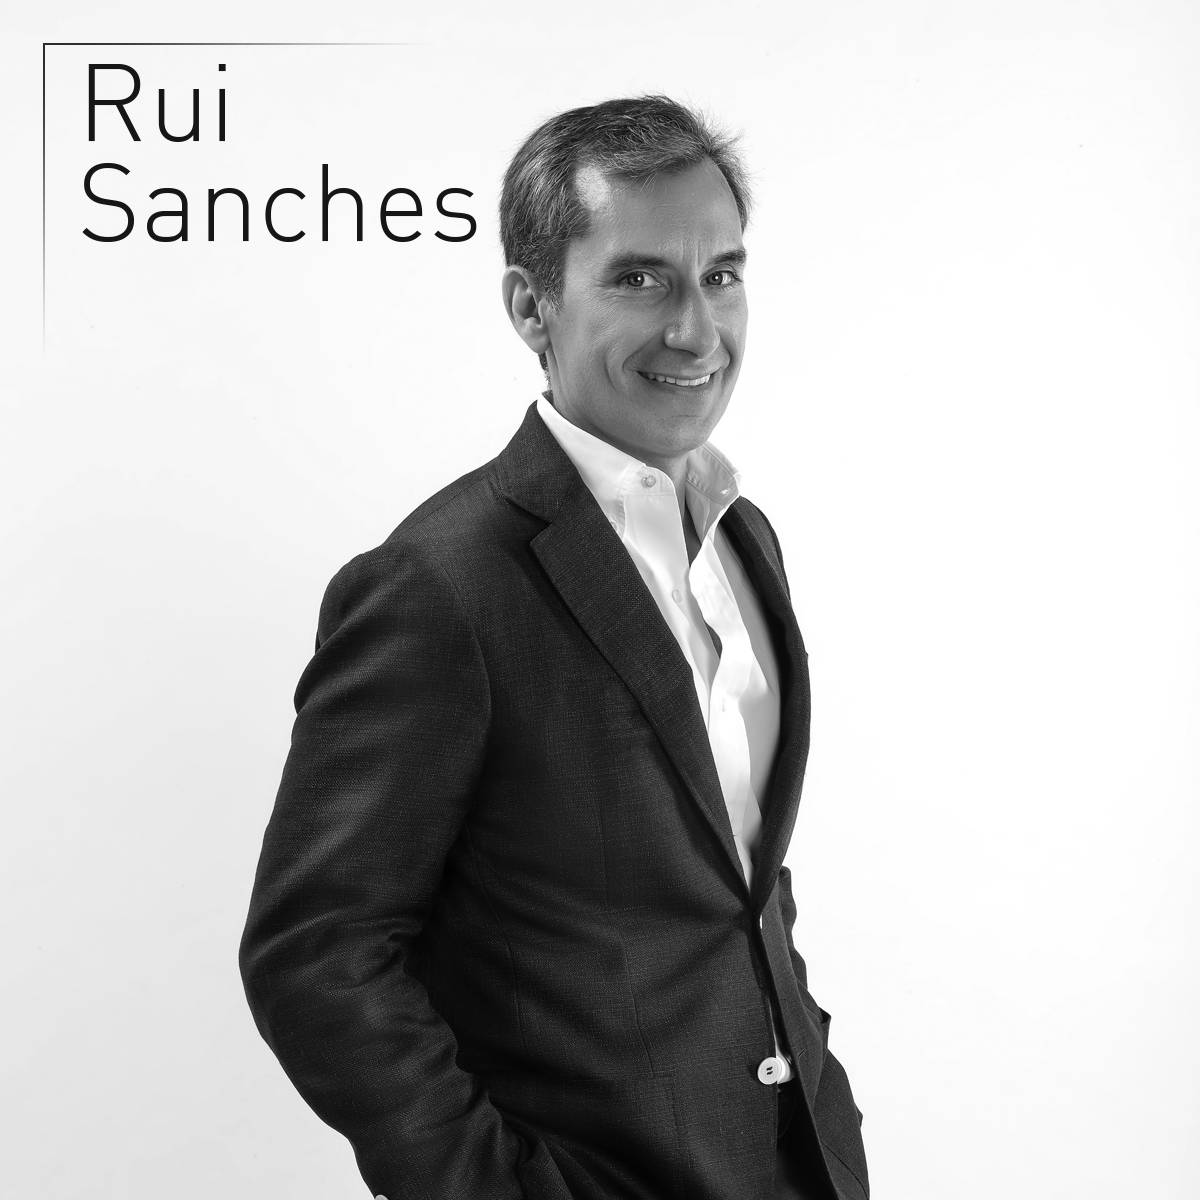 Rui-Sanches.jpg